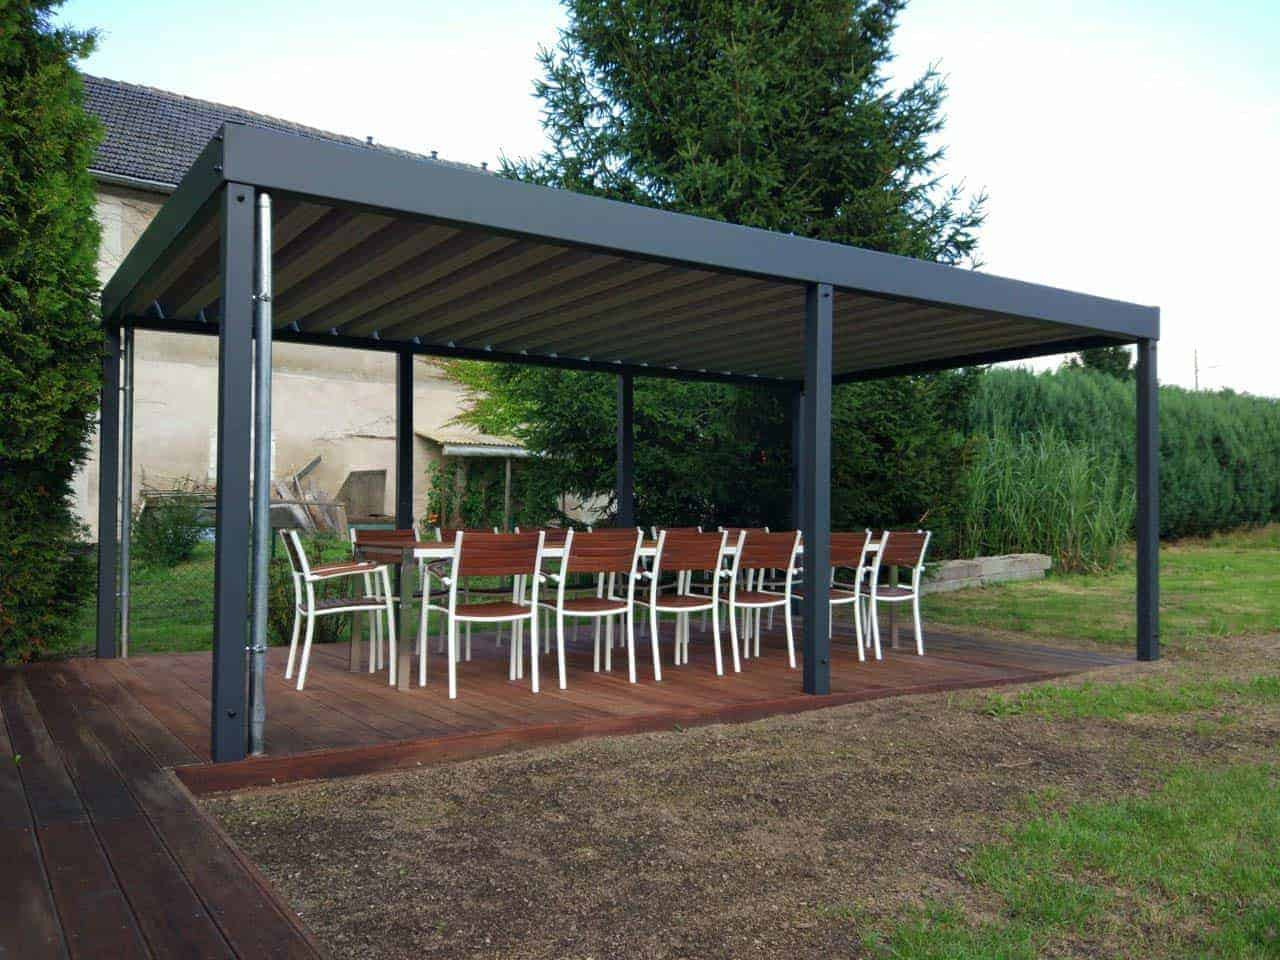 pavillon holz metall pavillon 001 metallcarport stahlcarport kaufen preise info. Black Bedroom Furniture Sets. Home Design Ideas